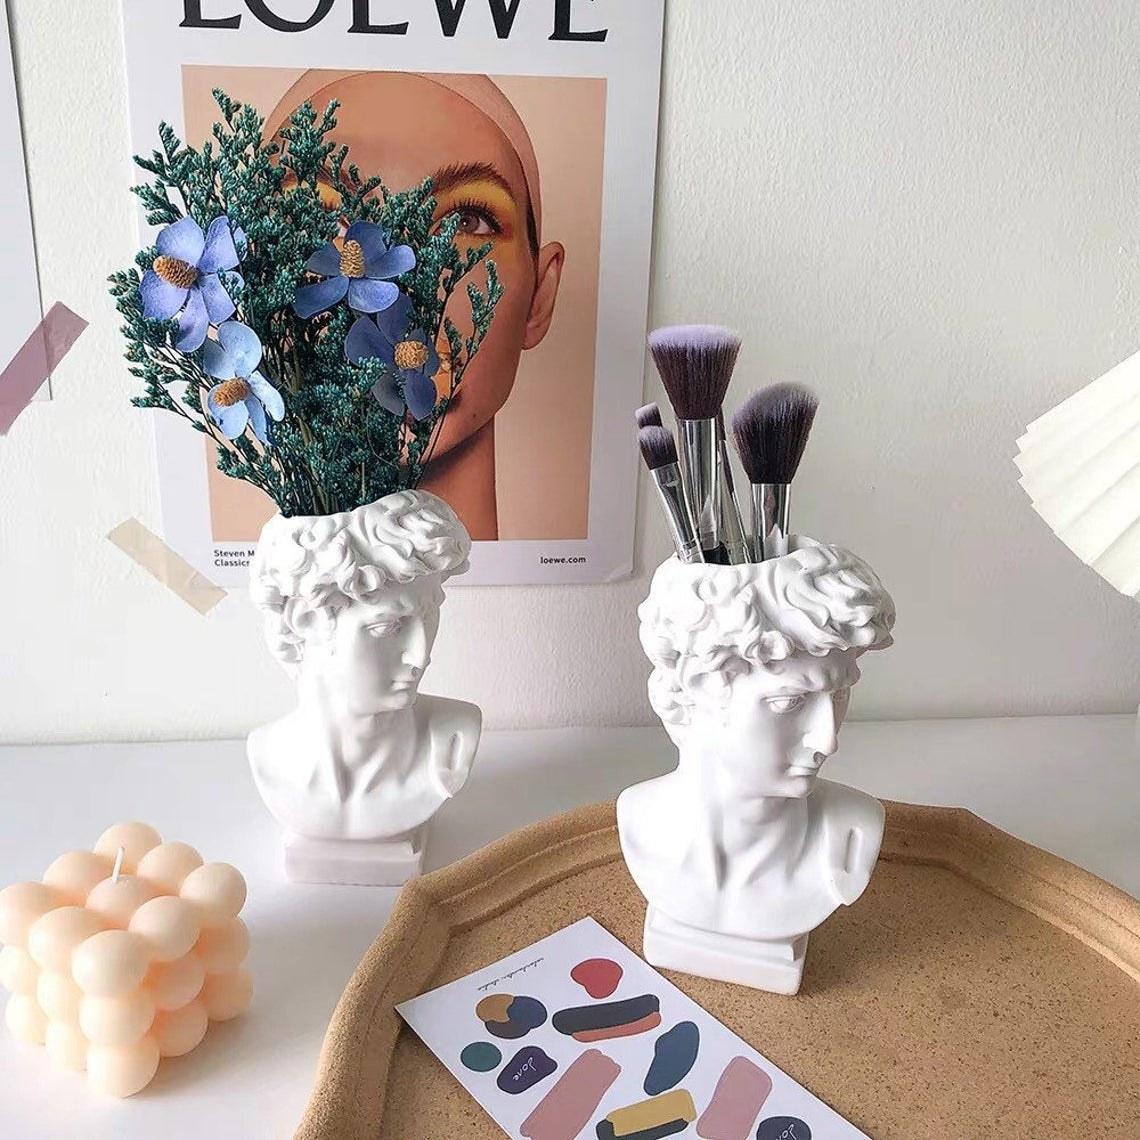 Two bus vases with flowers and makeup brushes inside